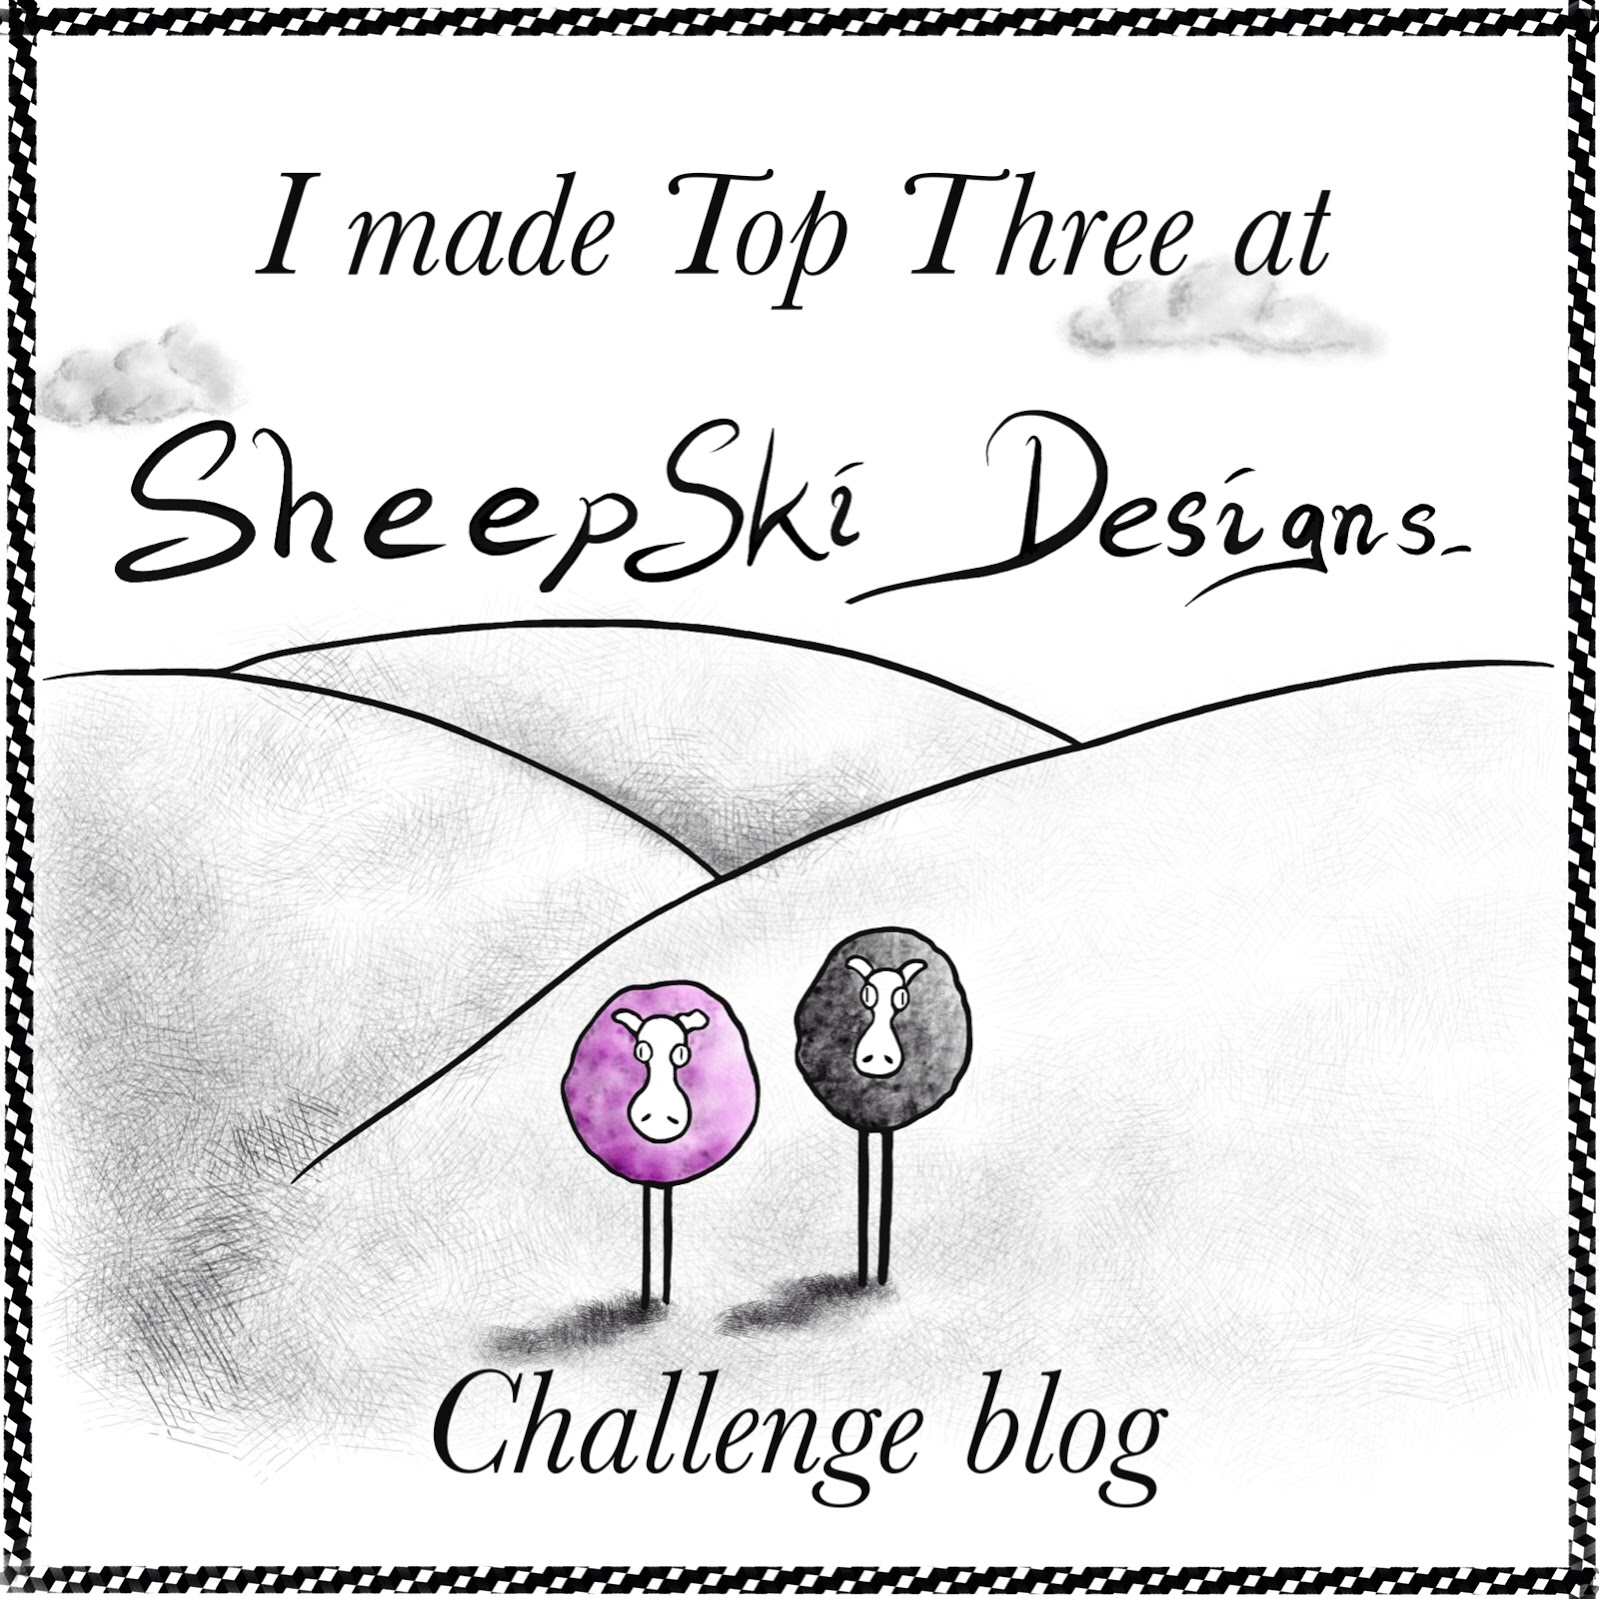 Sheepski Designs Top 3 Winner